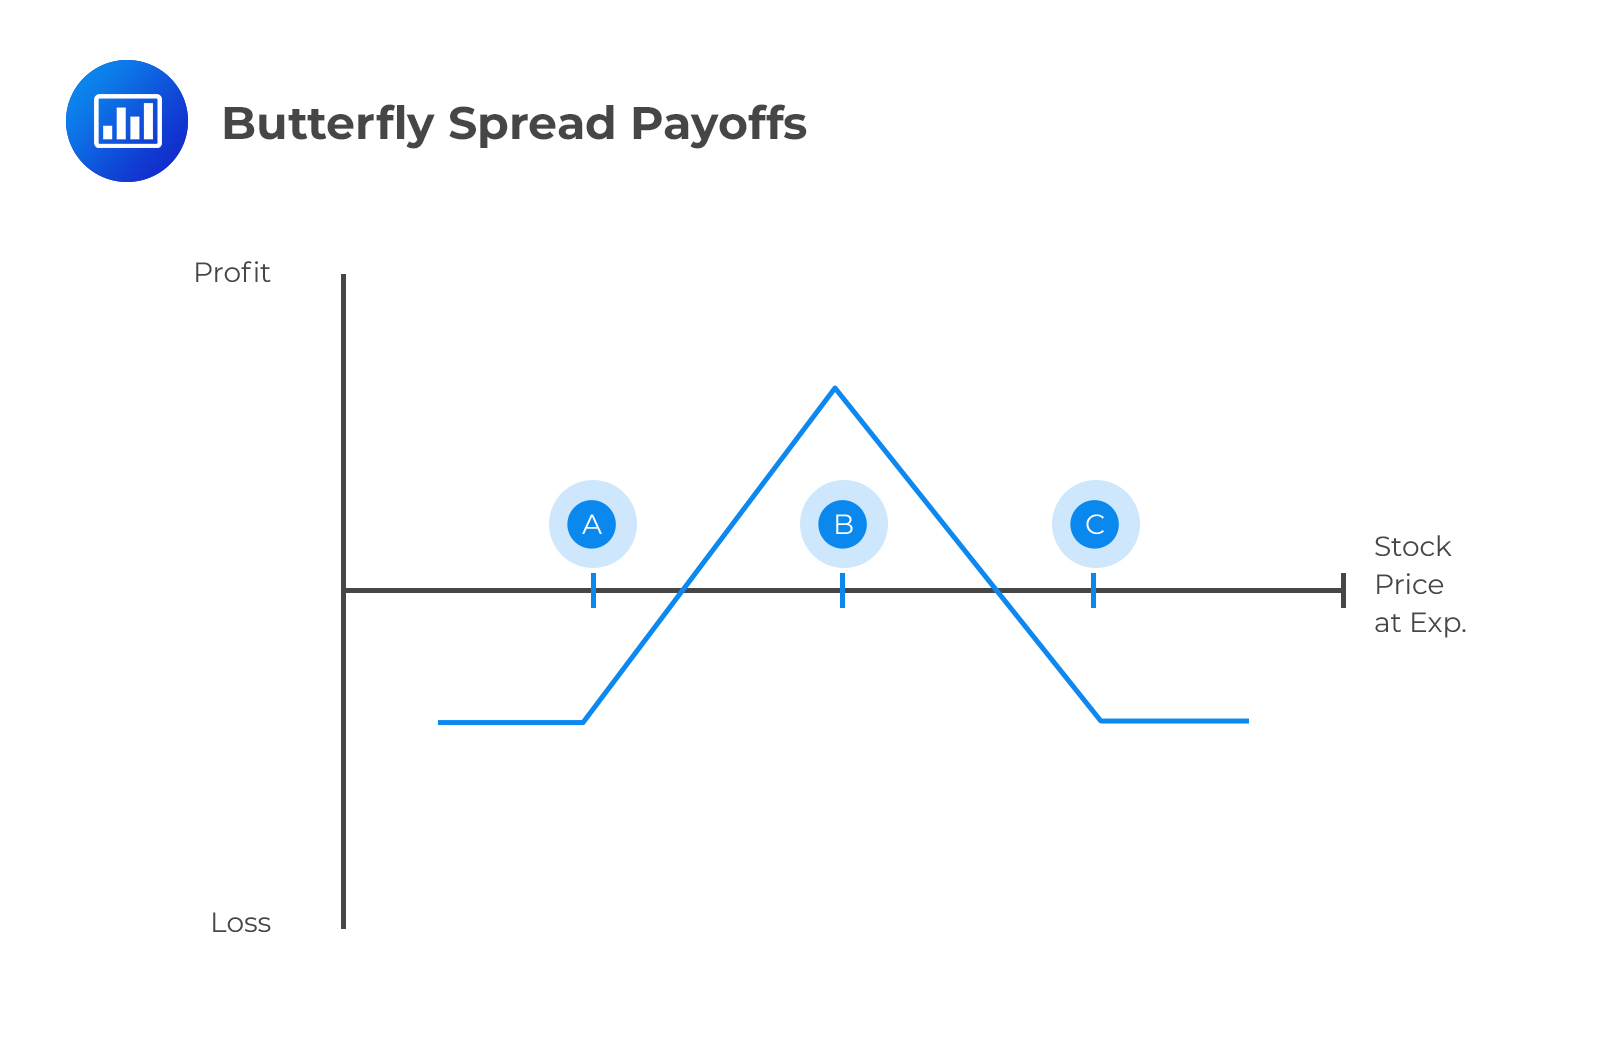 Butterfly Spread Payoffs